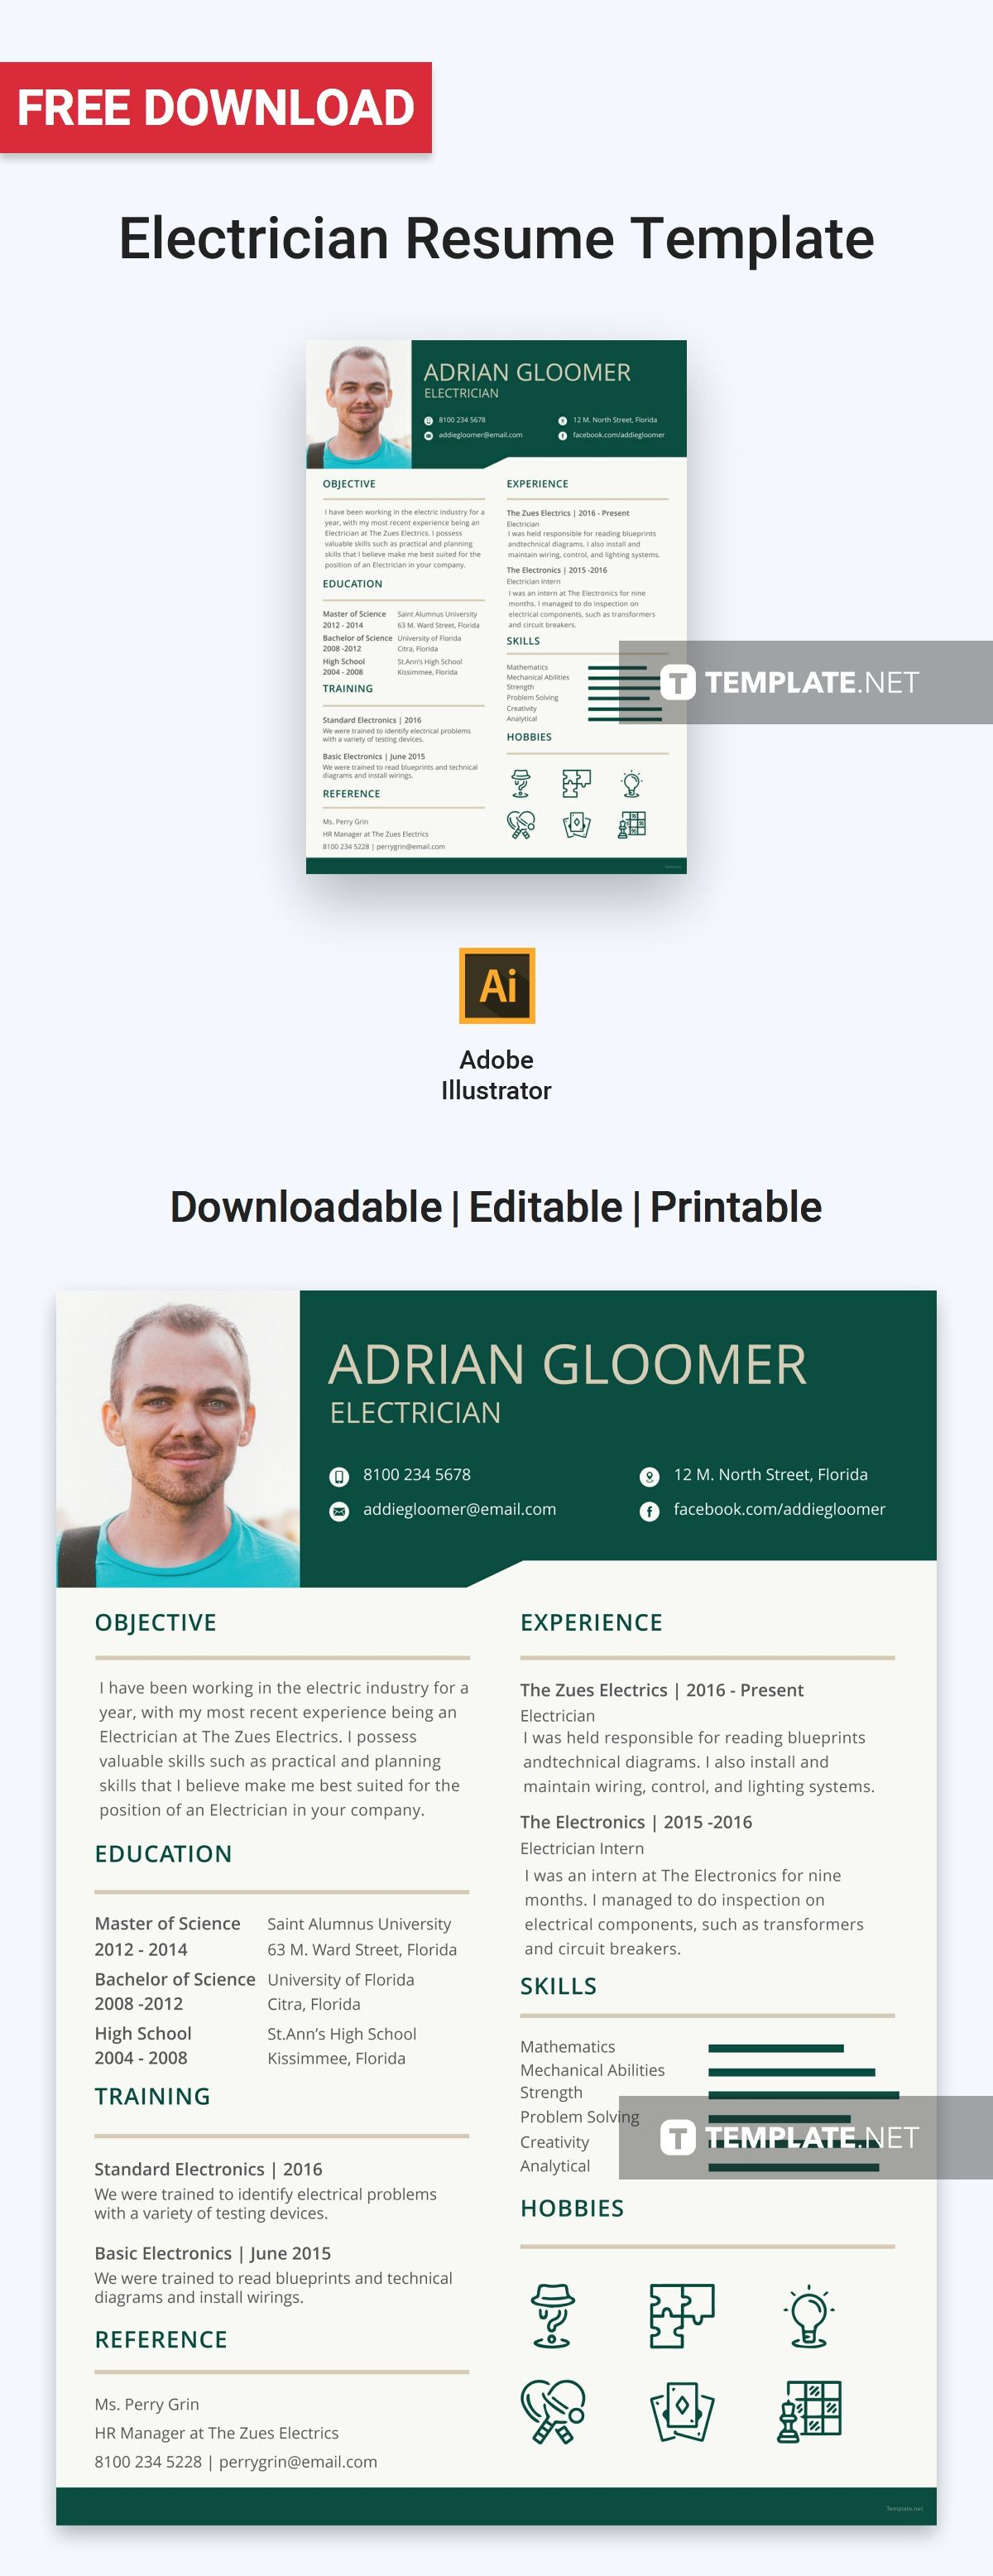 free electrician resume resume, design template office manager bullet points best career objective for curriculum vitae examples pdf